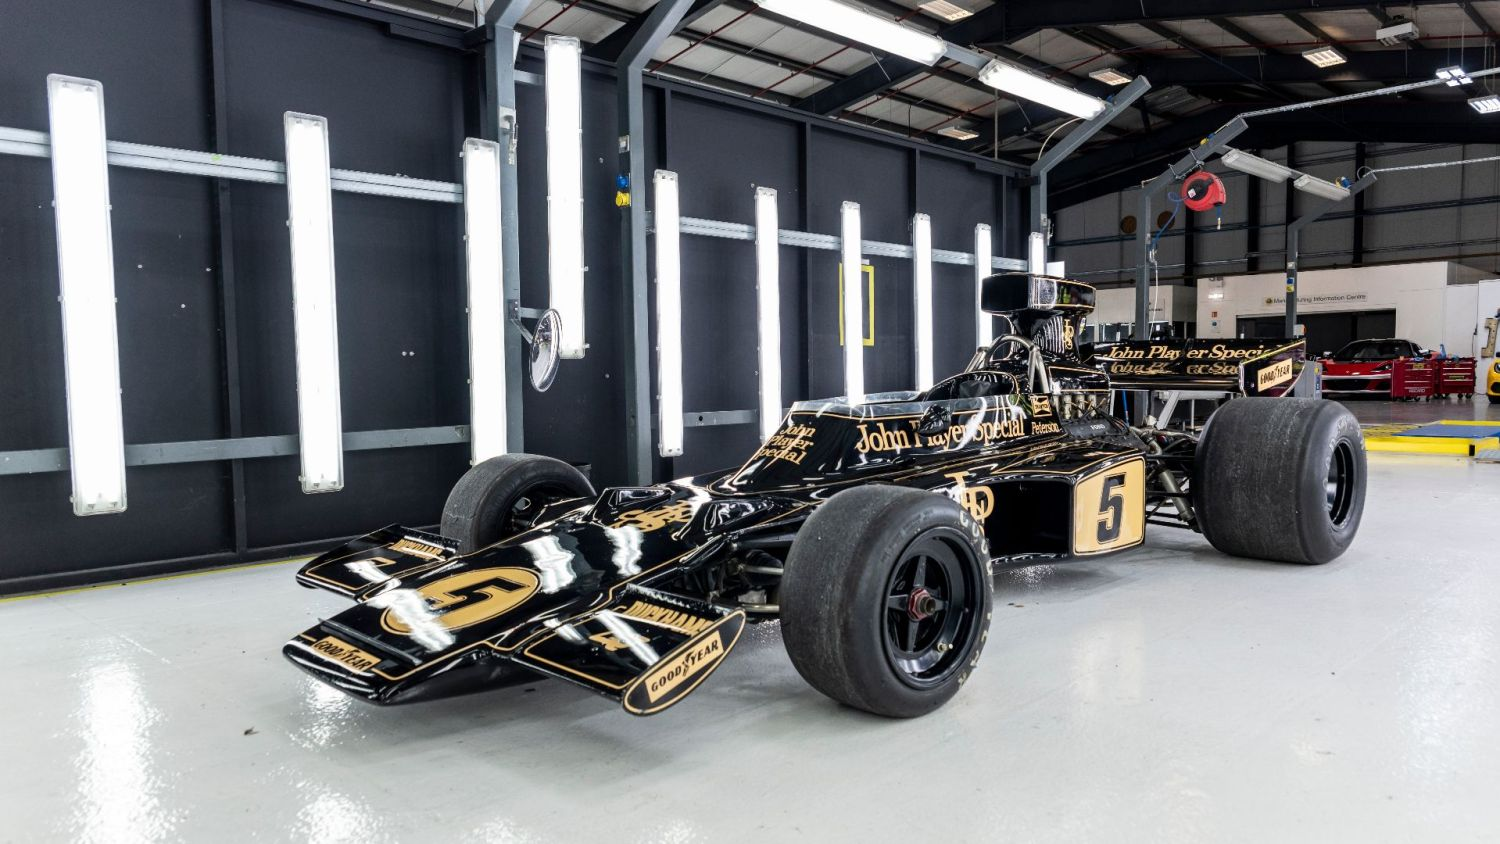 Classic Team Lotus loaned an interesting addition for #MerryDriftmas filming, an iconic Lotus 72